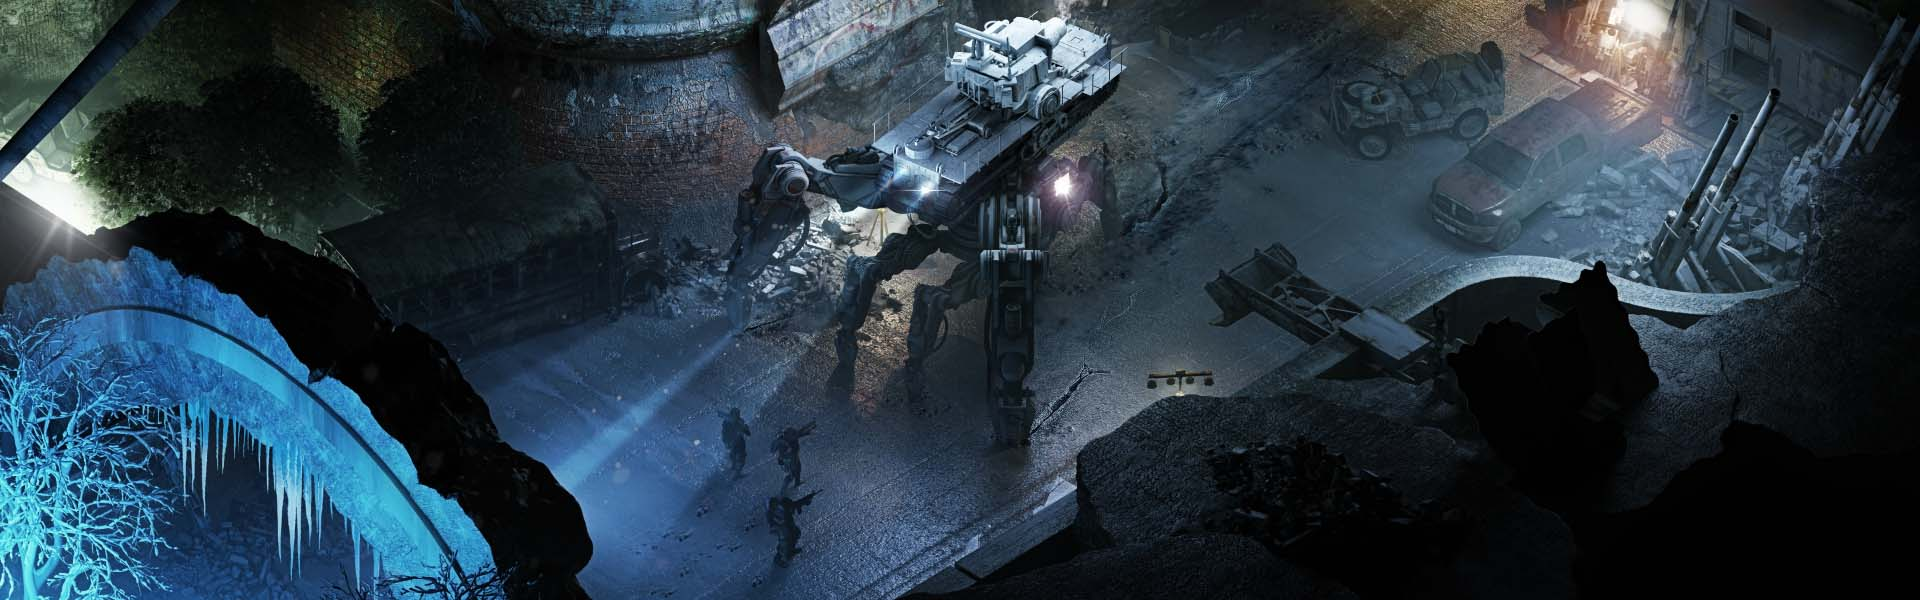 Wasteland 3 Release Date, News, Trailer, and Rumors